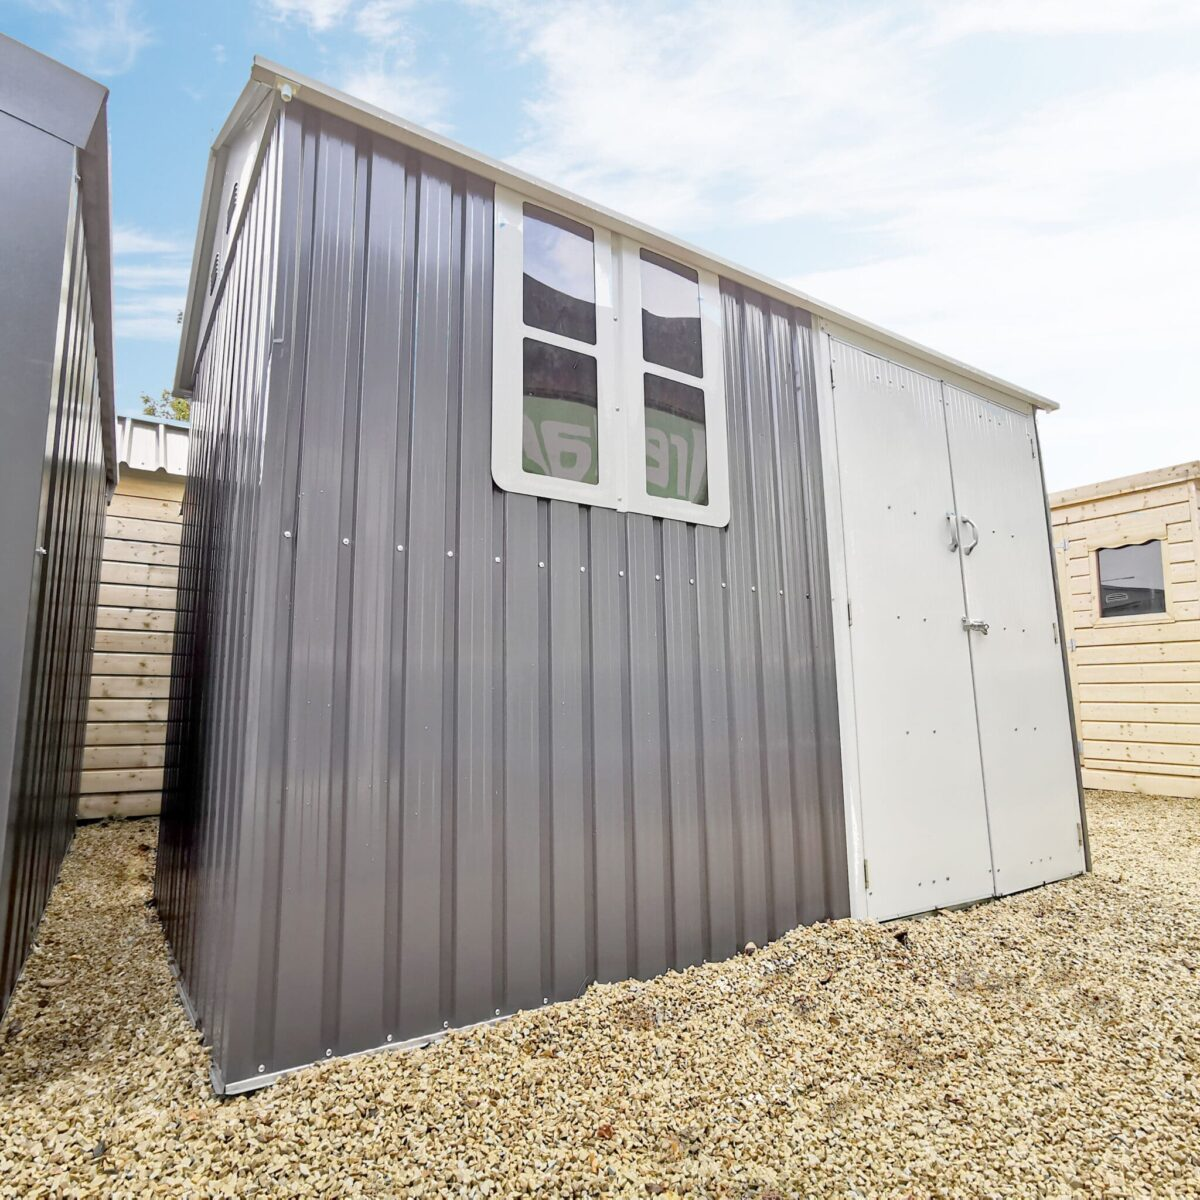 The Steel Cottage garden shed with a window on the Sheds Direct Ireland showroom